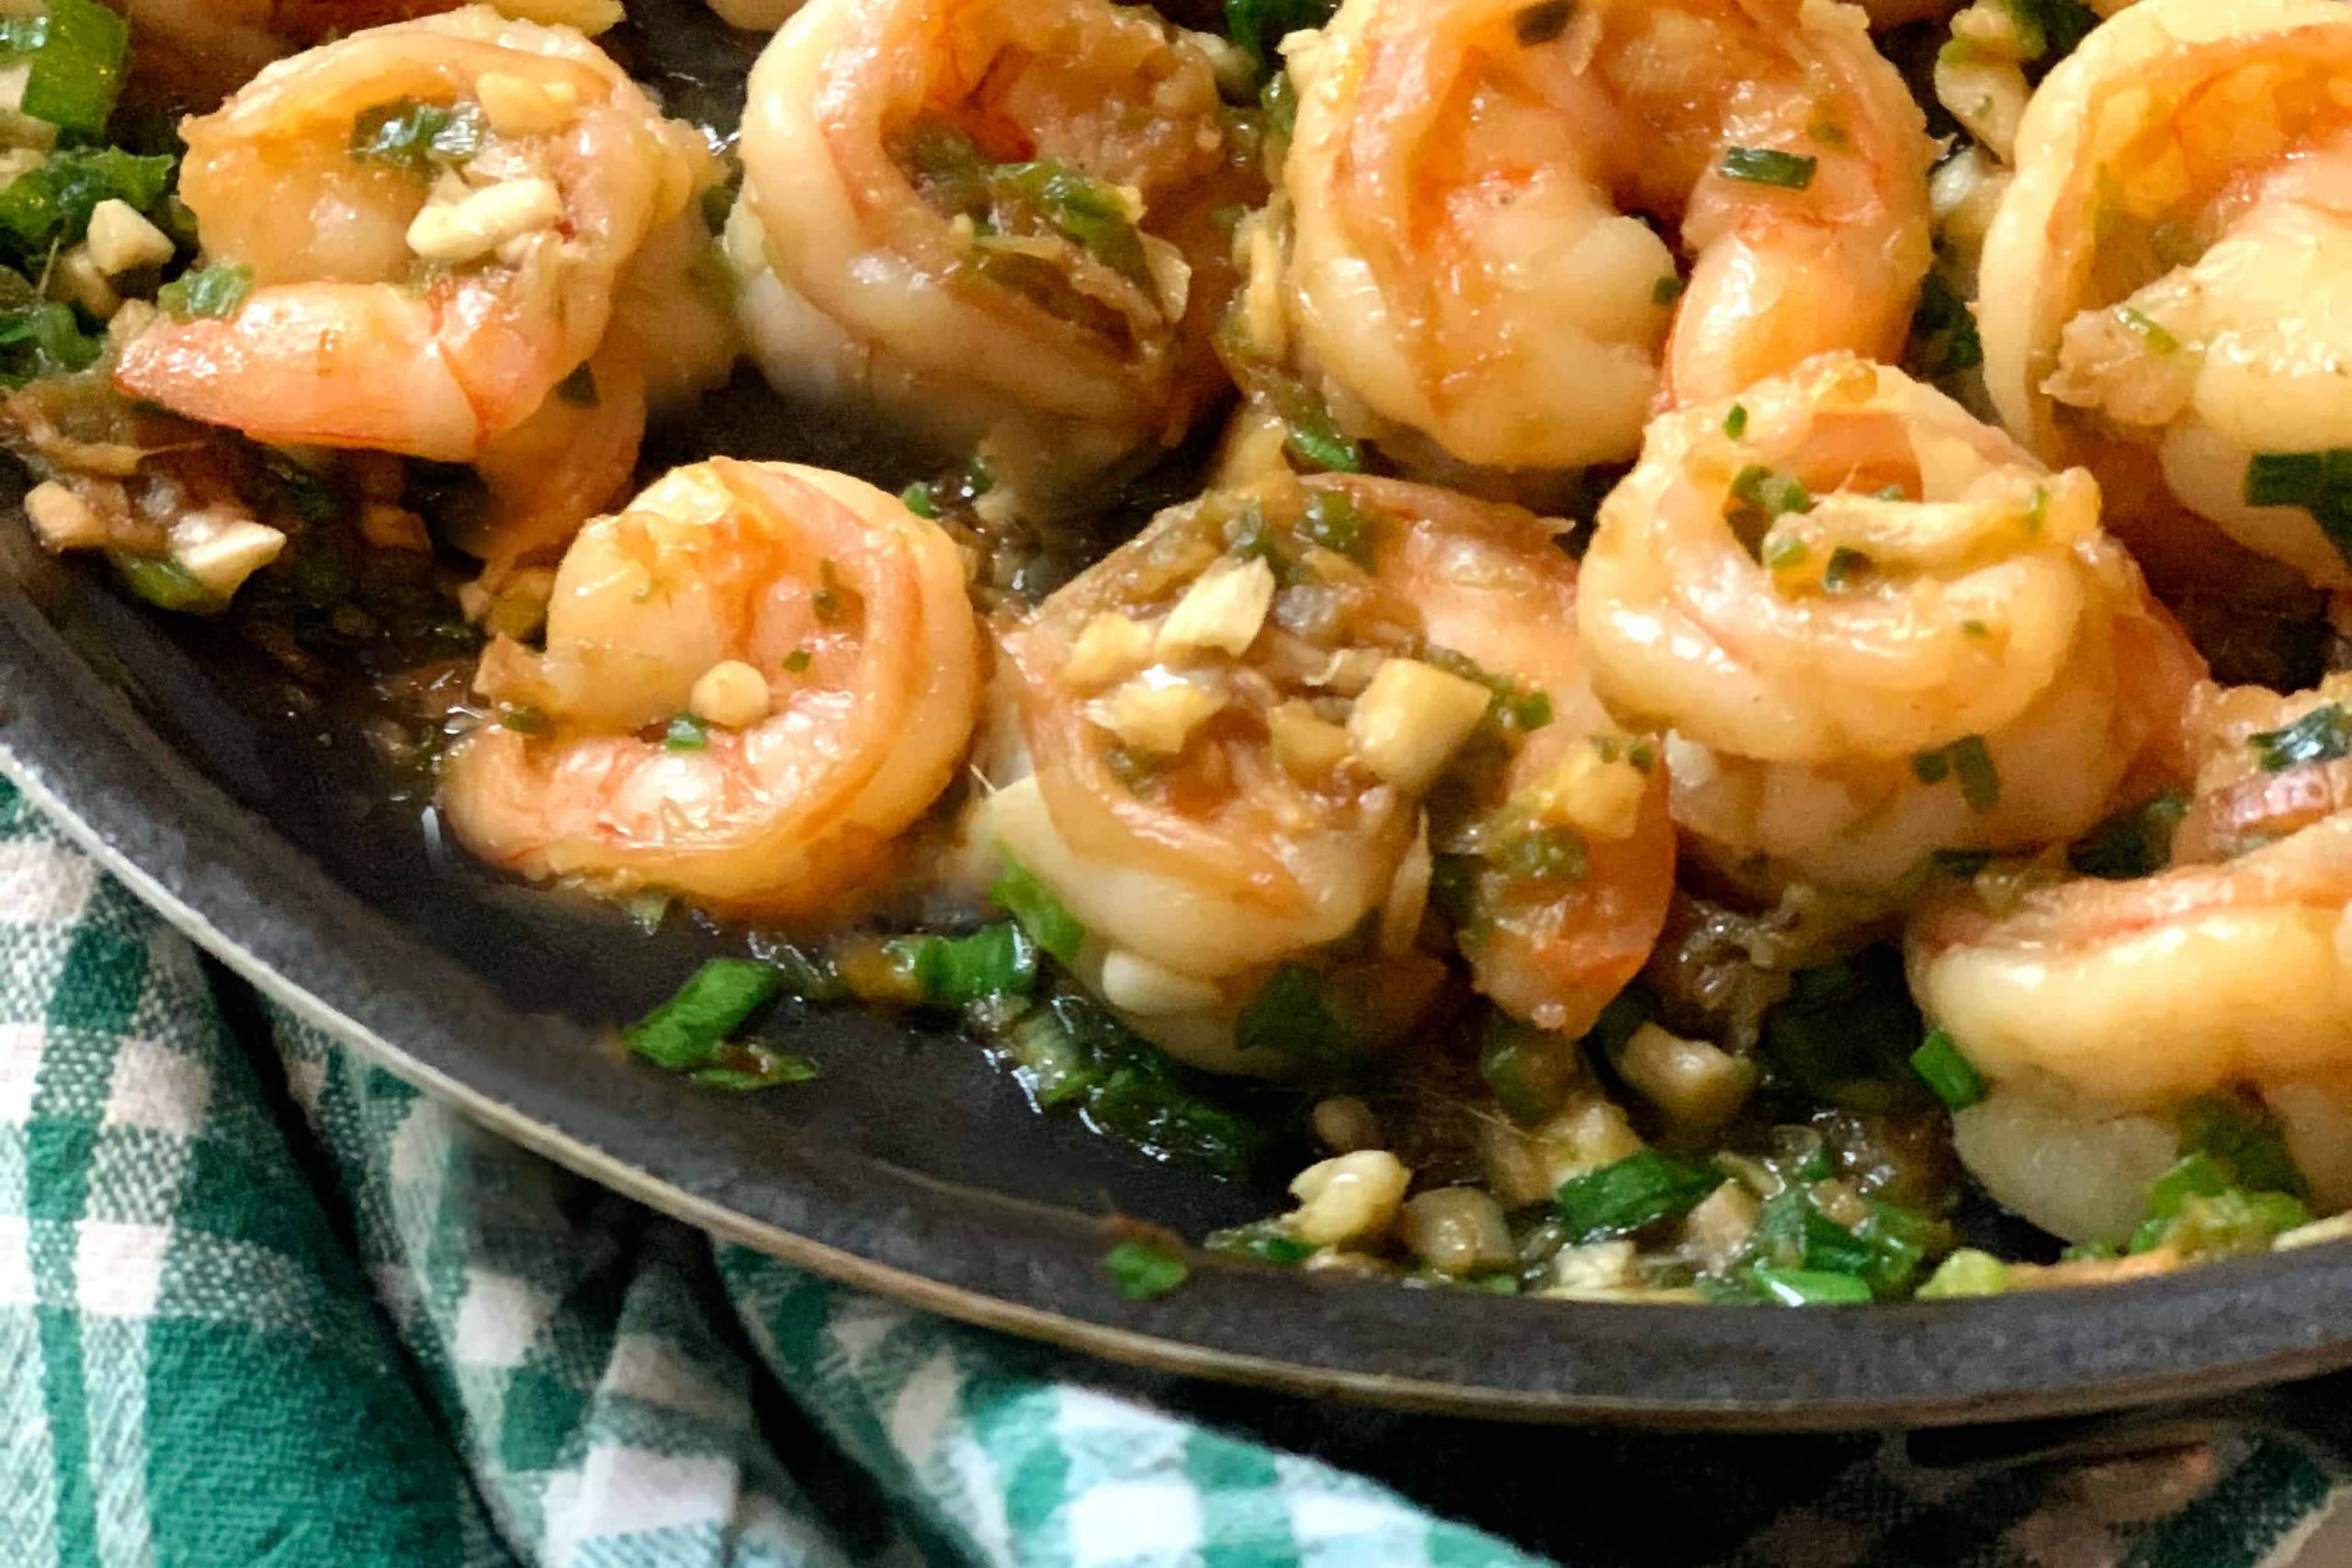 Easy Chinese style sauteed shrimp recipe in a frying pan